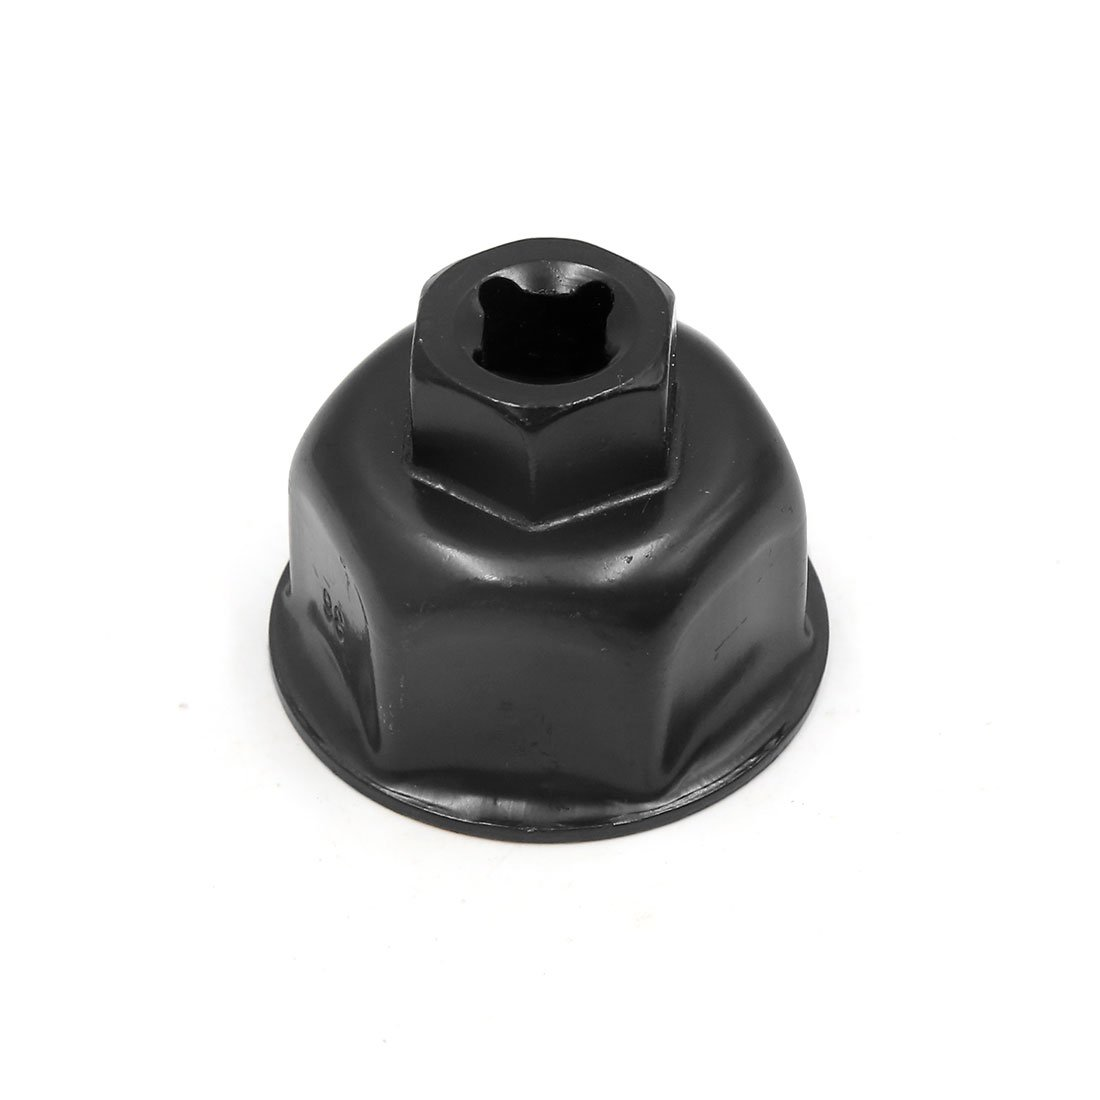 uxcell Black Metal 36mm Inner Dia Car Oil Filter Cap Wrench Socket Remover for Audi A6L